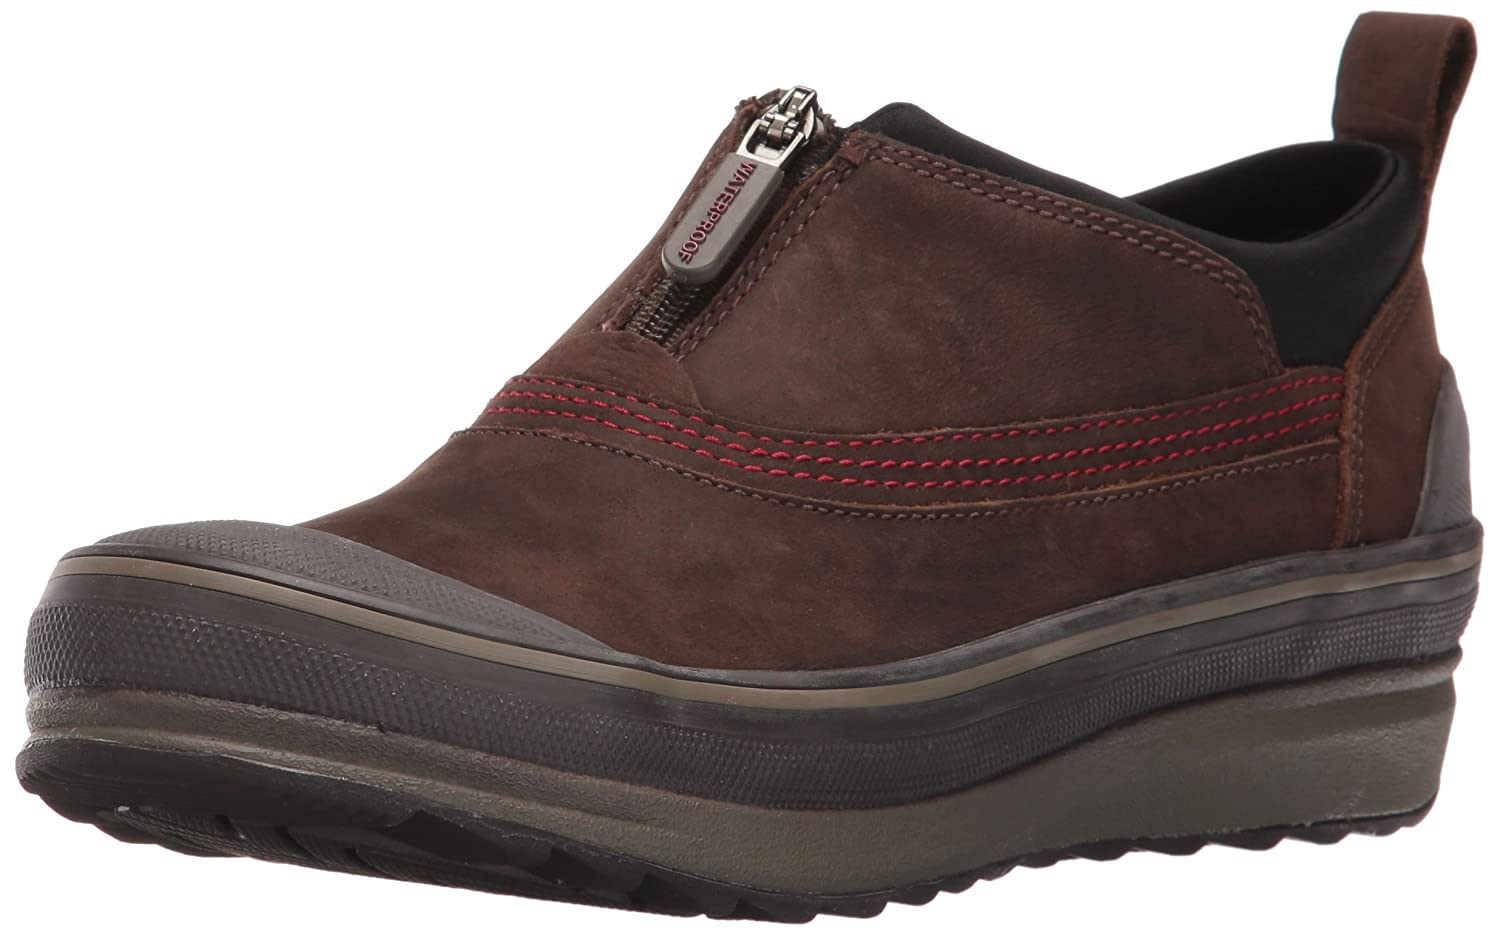 CLARKS Women's Muckers Ruck Rain Shoe B01AI074IM 9.5 B(M) US|Brown Nubuck